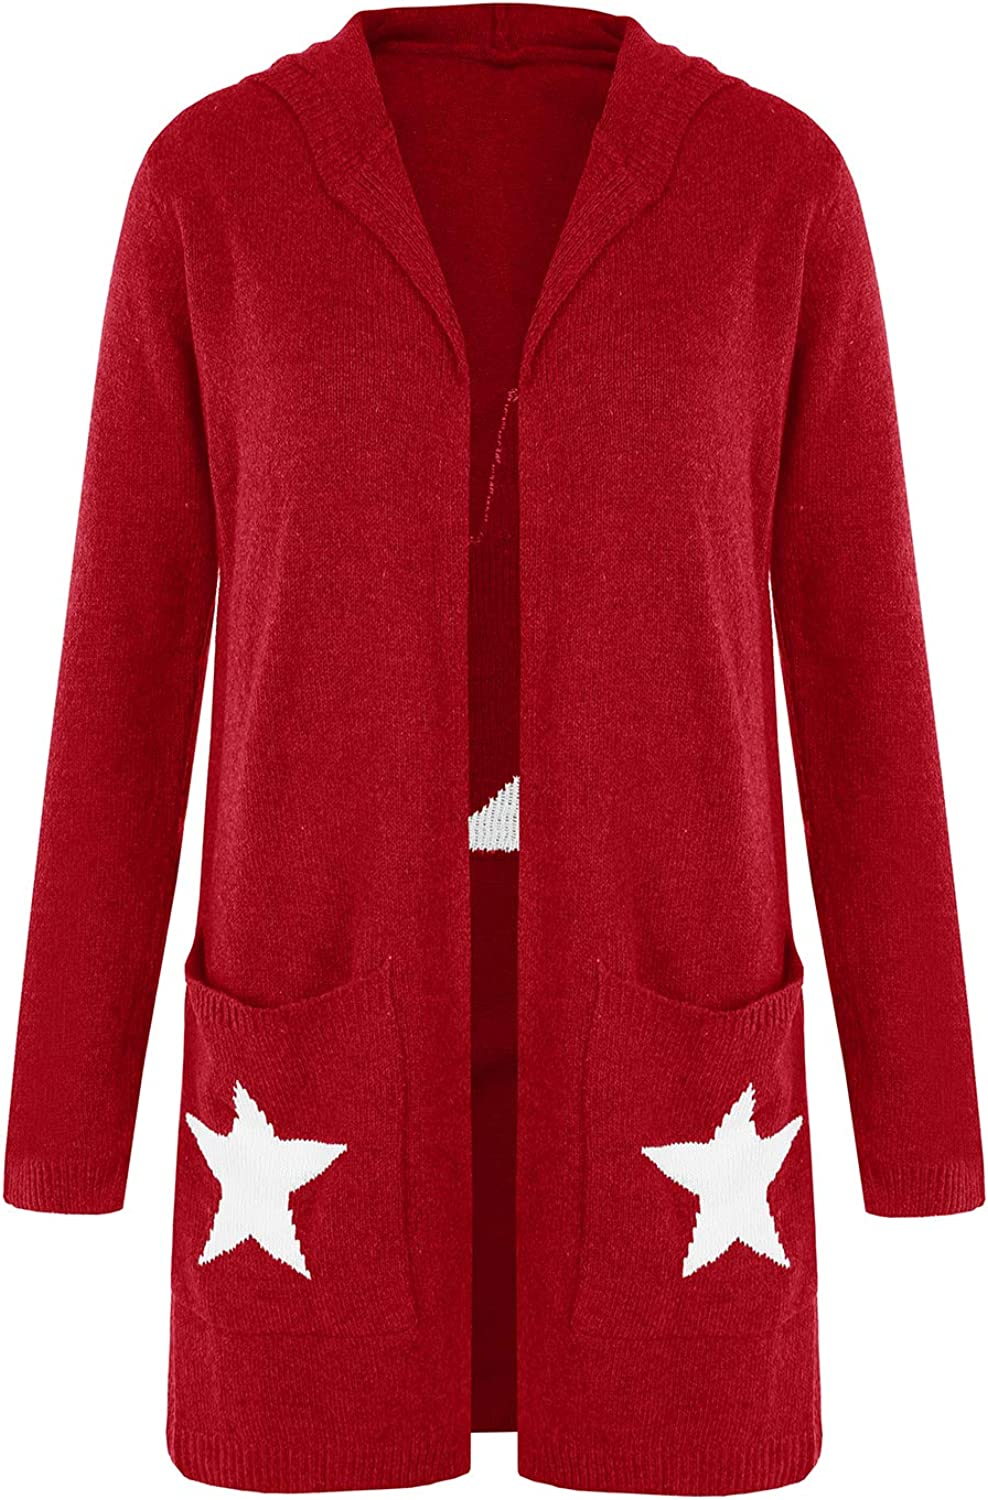 FISACE Womens Open Front Knit Cardigan Sweaters with Pockets Long Sleeve Hooded Outerwear